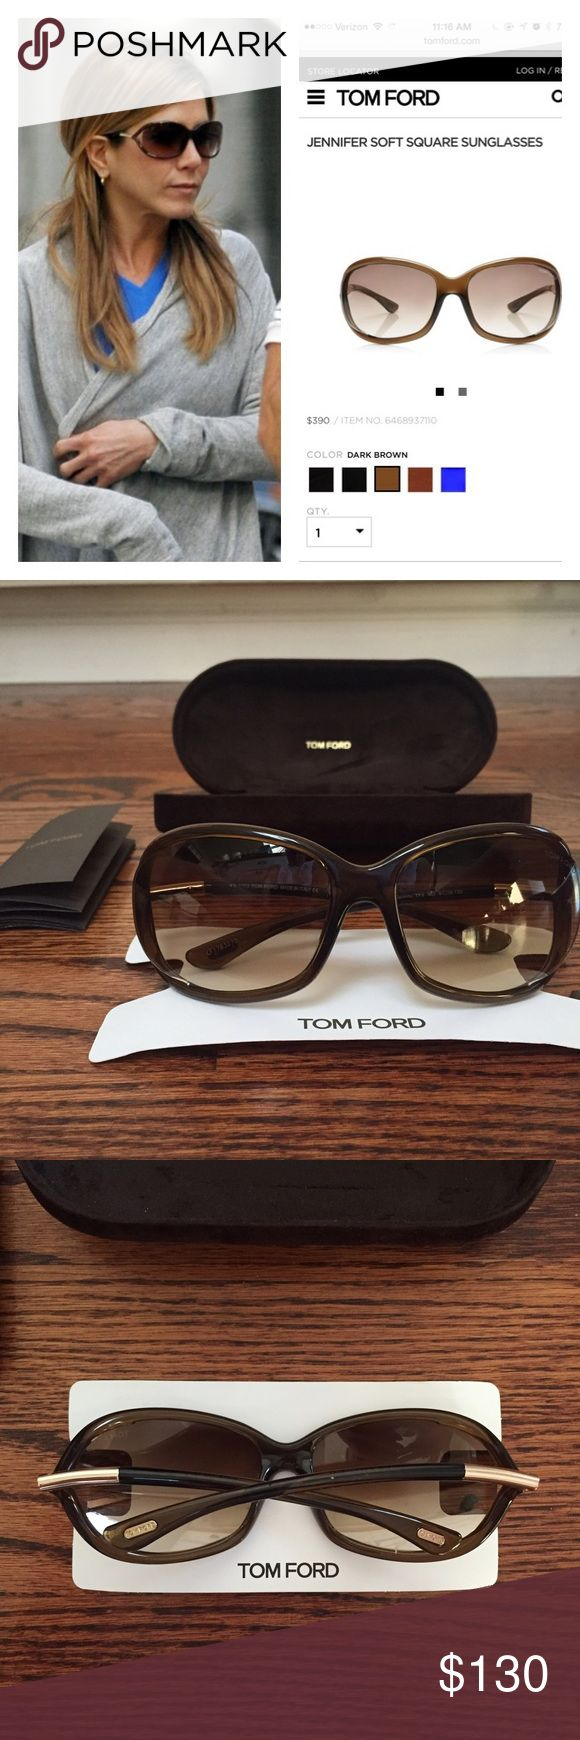 NEW Tom Ford jennifer sunglasses authentic A favorite of Jennifer Aniston and Angelina Jolie, these brand new authentic Tom Ford Jennifer soft square sunglasses are a staple. Glasses have serial #, happy to provide it! Size is 61 and color is dark brown. No trades please! Tom Ford Accessories Sunglasses